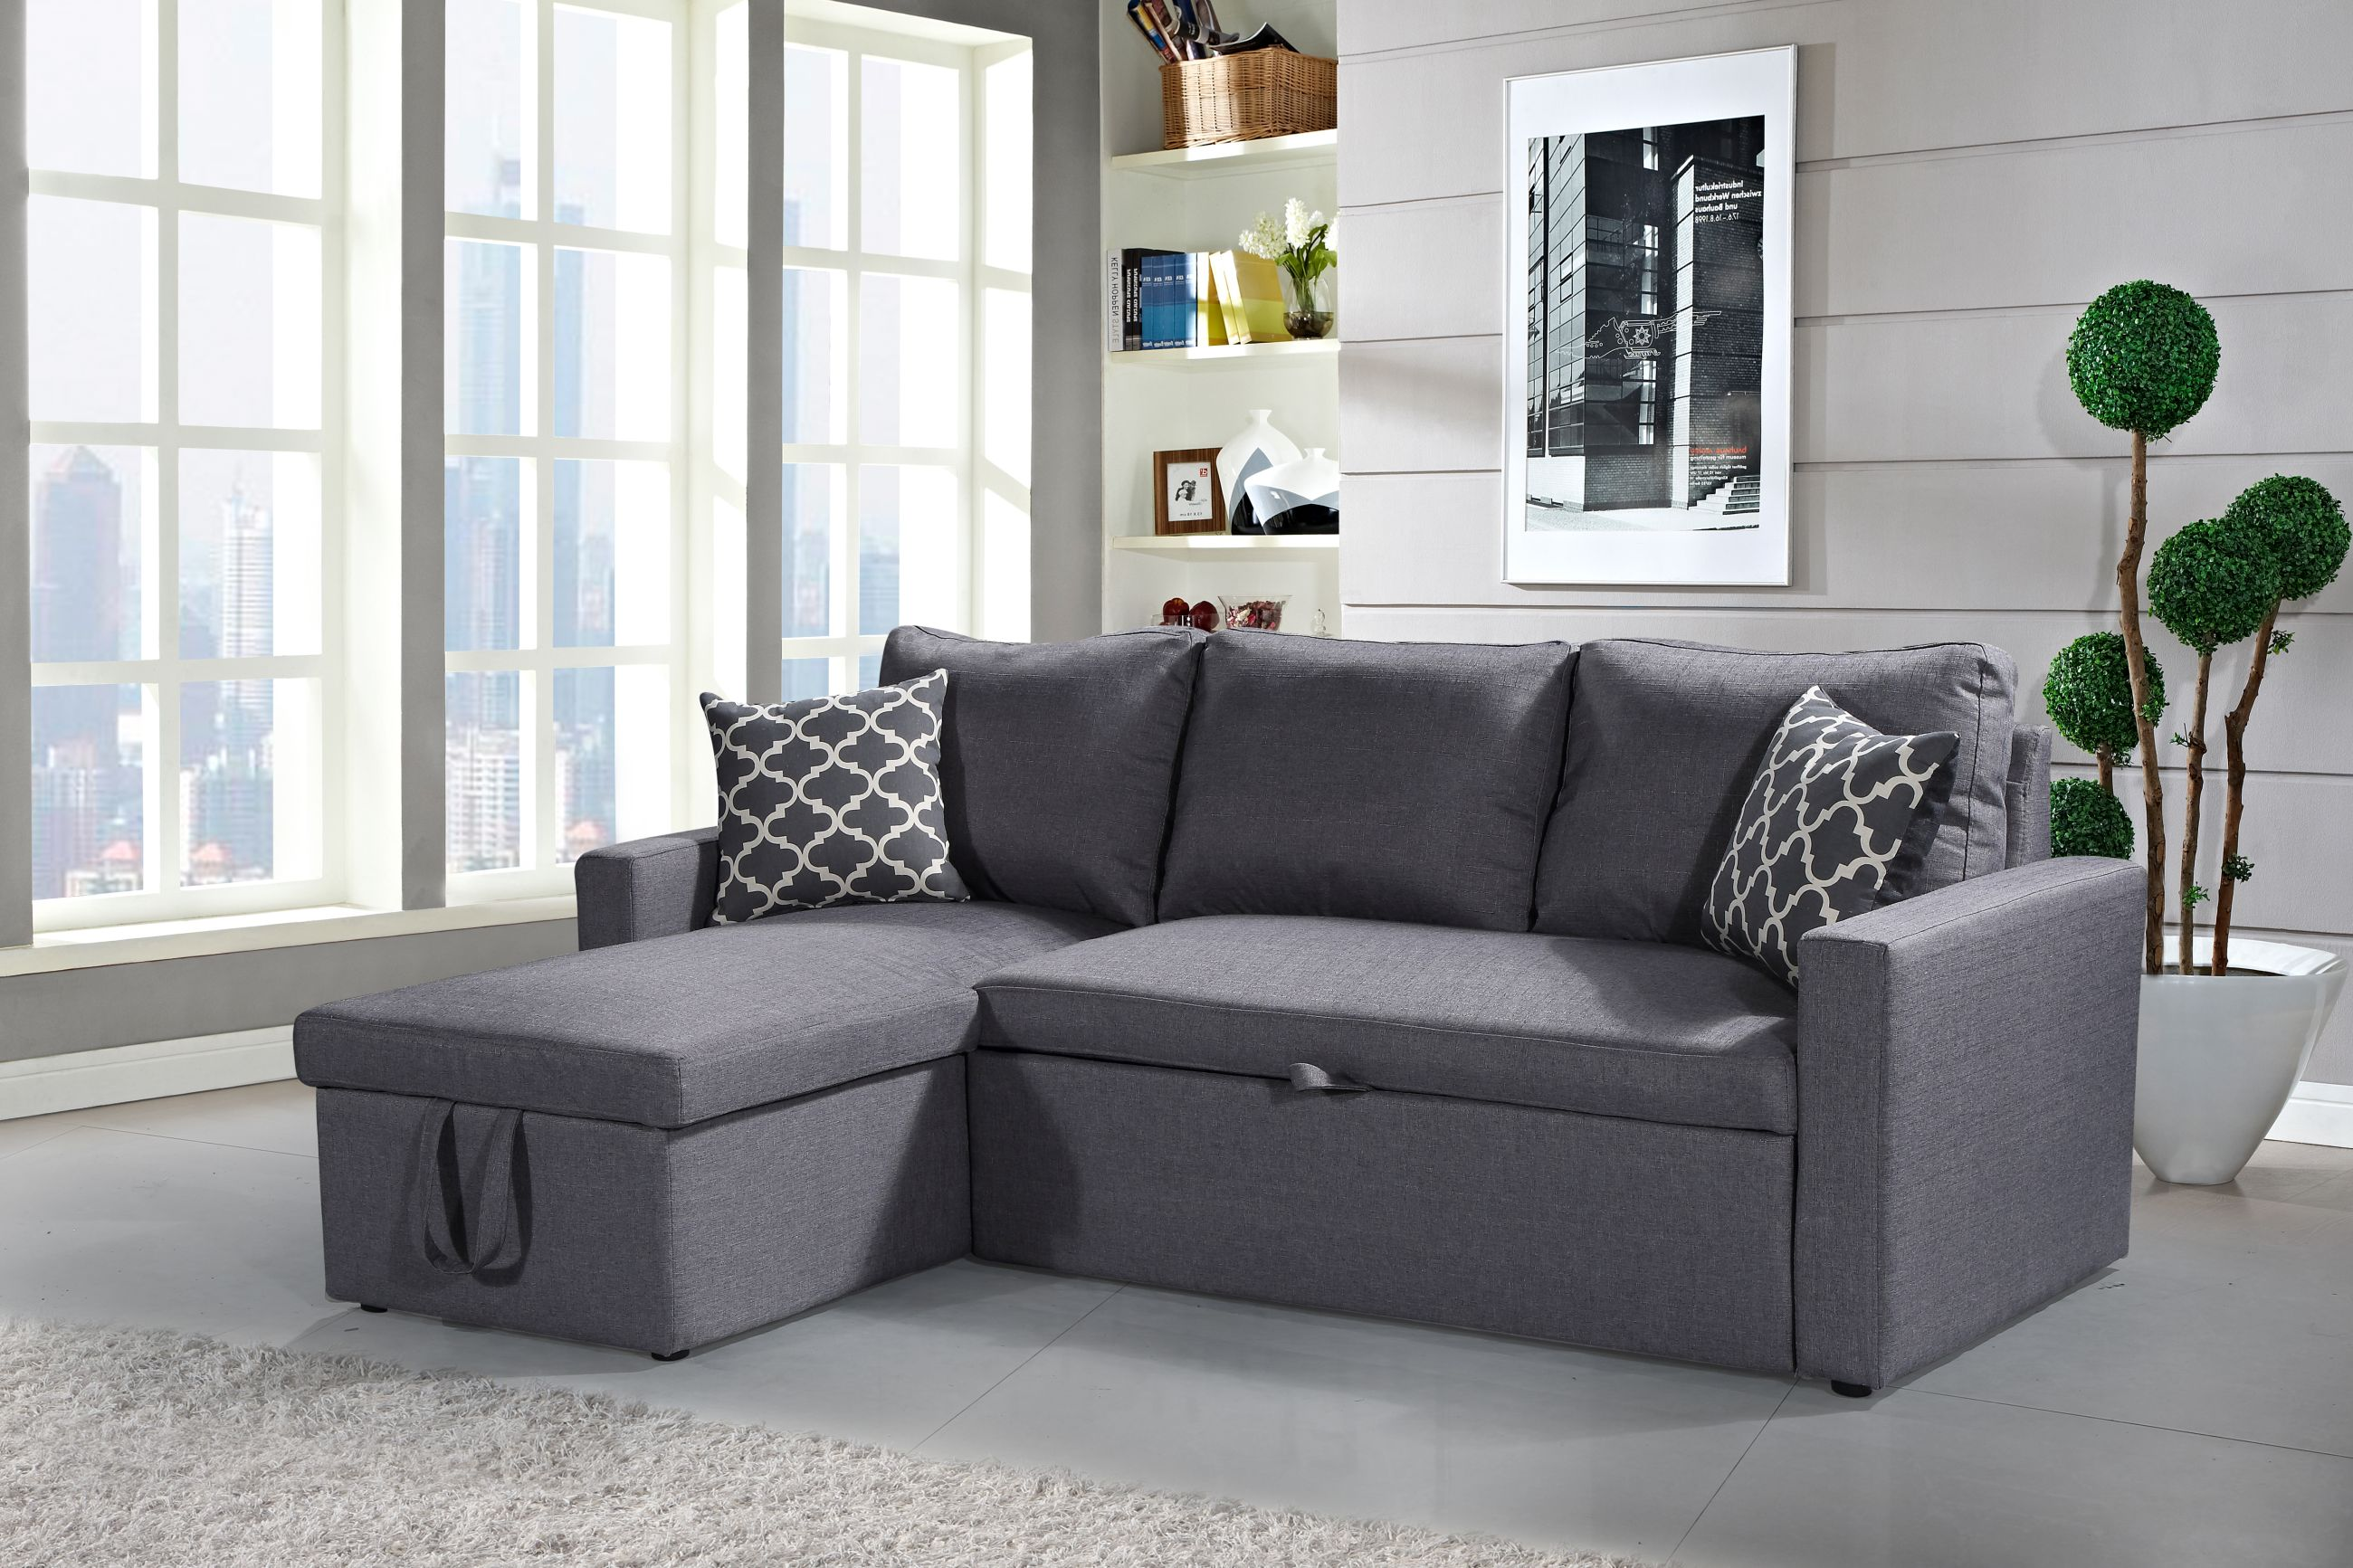 sectional sofa bed with storage. HS05-Husky-Furniture-Zara-Reverseable-Sectional-Sofa-3. Sectional Sofa Bed With Storage E